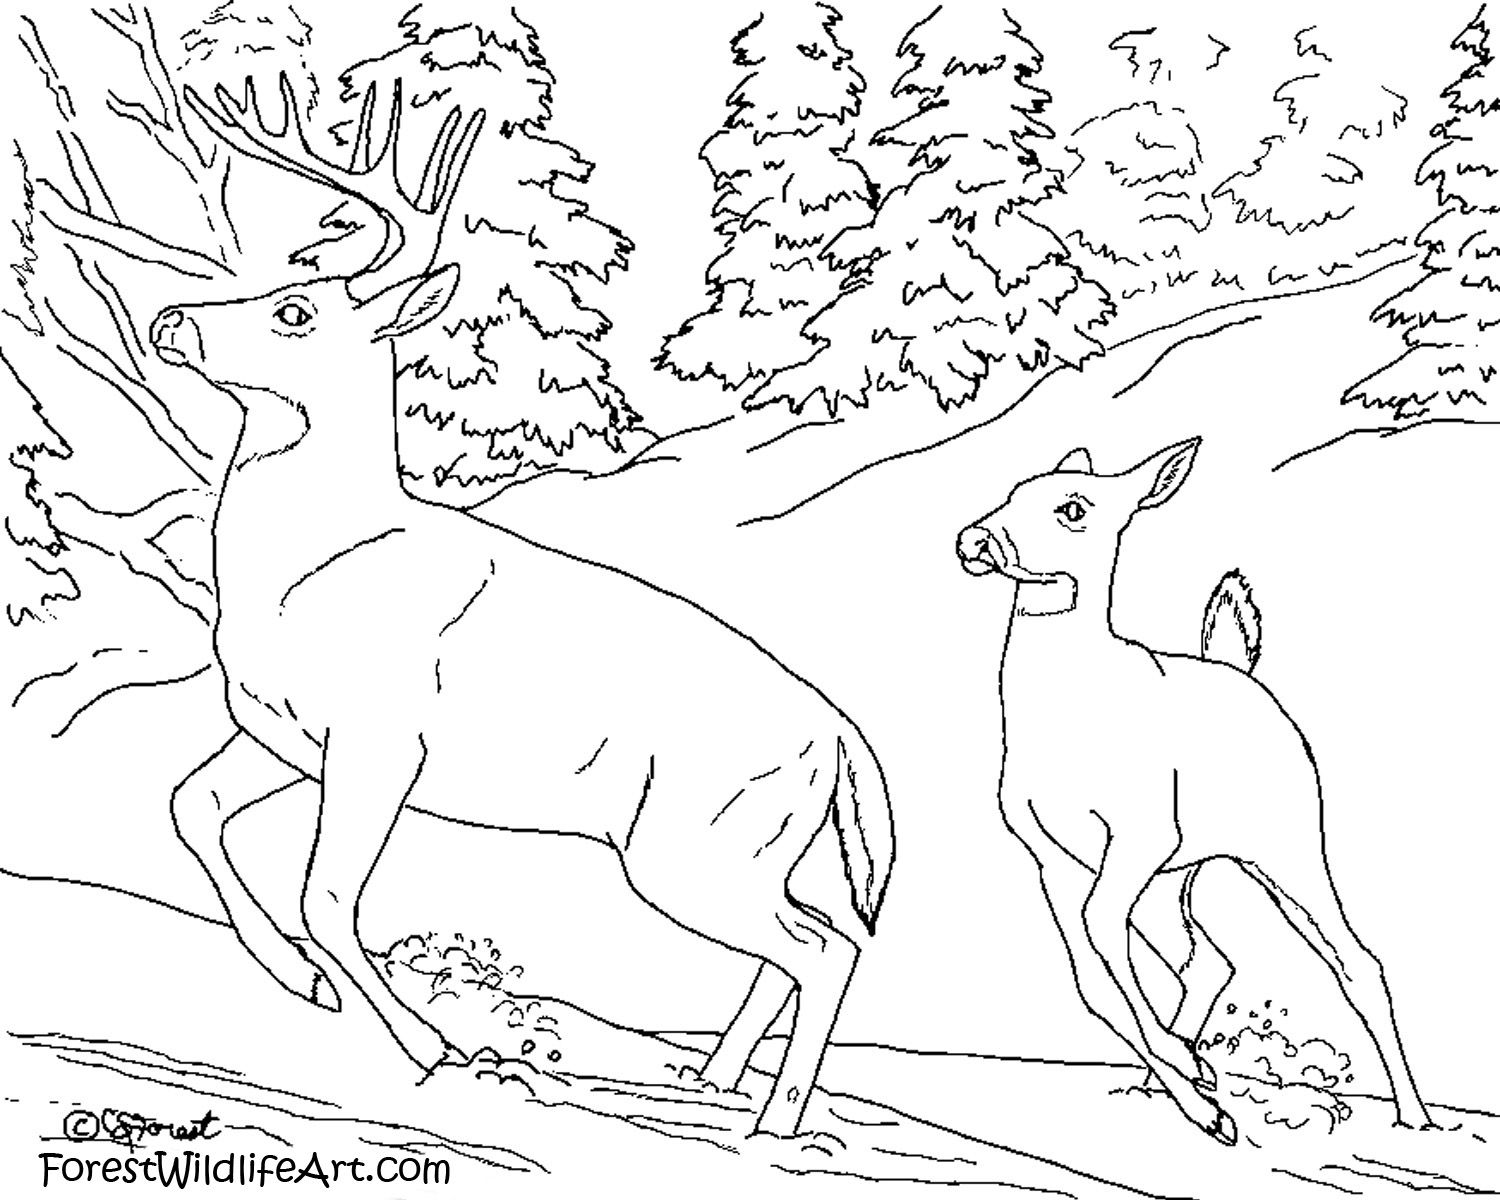 pictures that you can color and print out here is the original full color painting - Pictures That You Can Color And Print